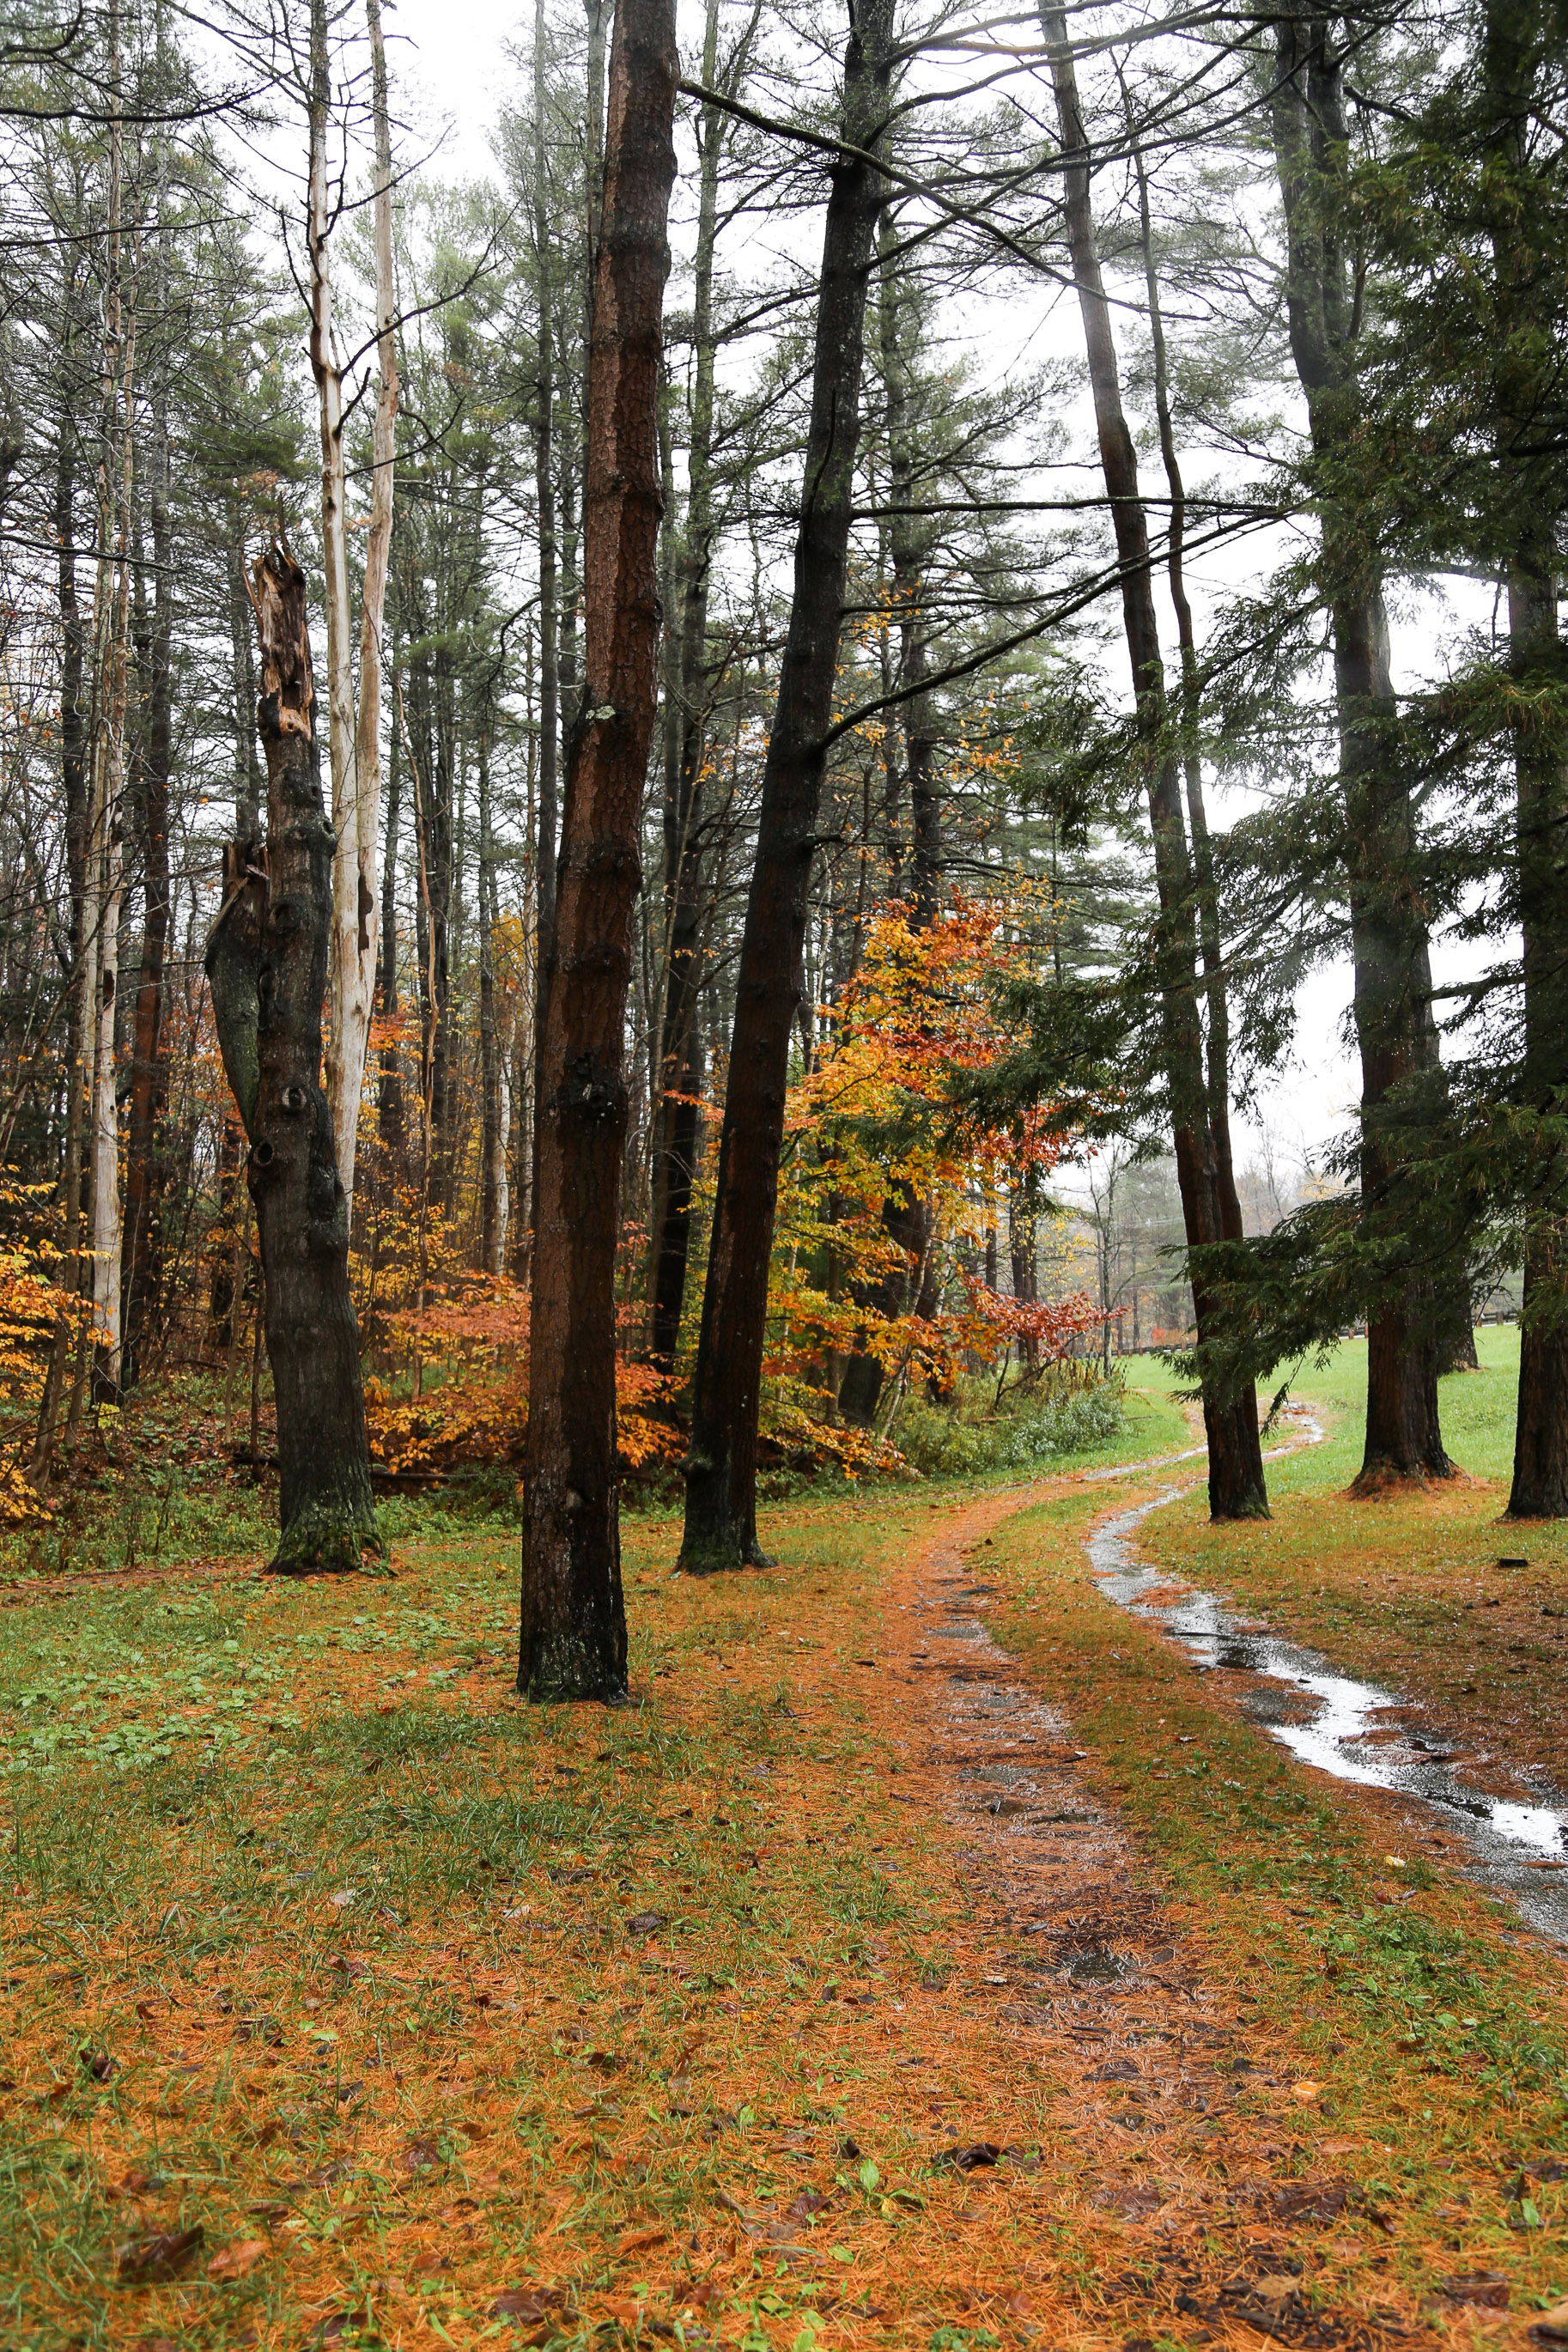 New-England-in-the-fall-3.jpg